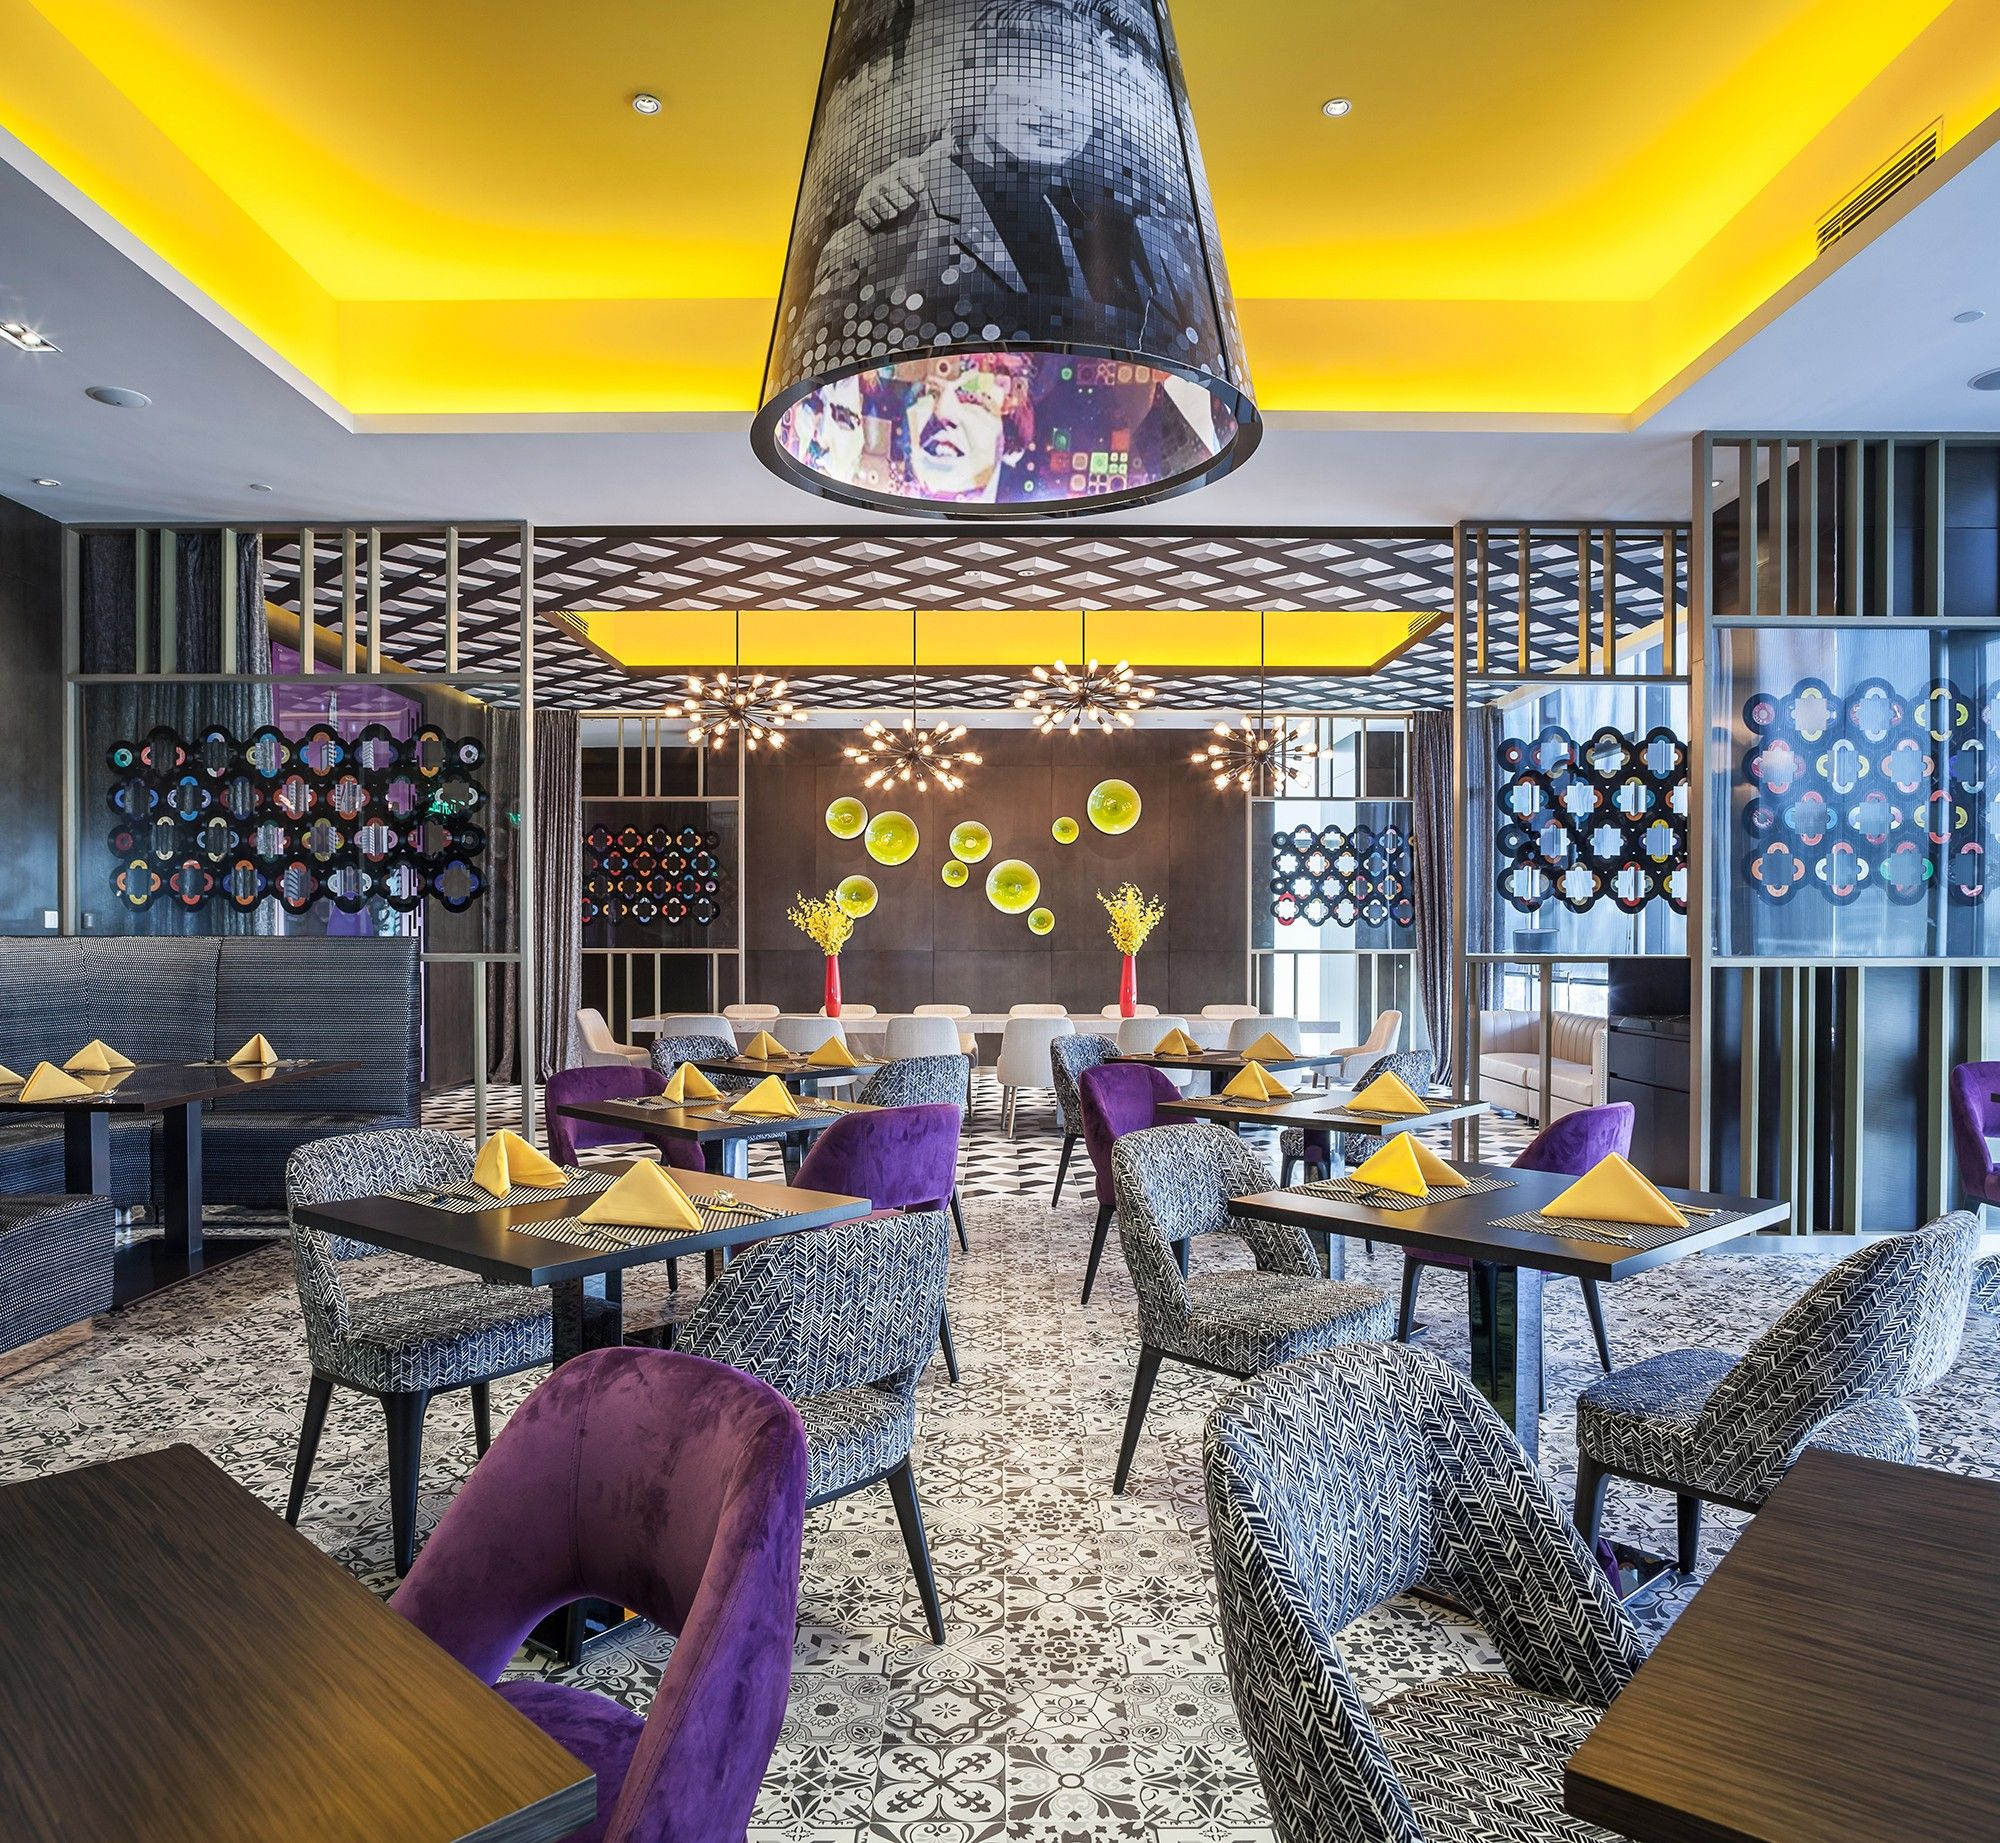 Although hard rock hotel is a very successful brand